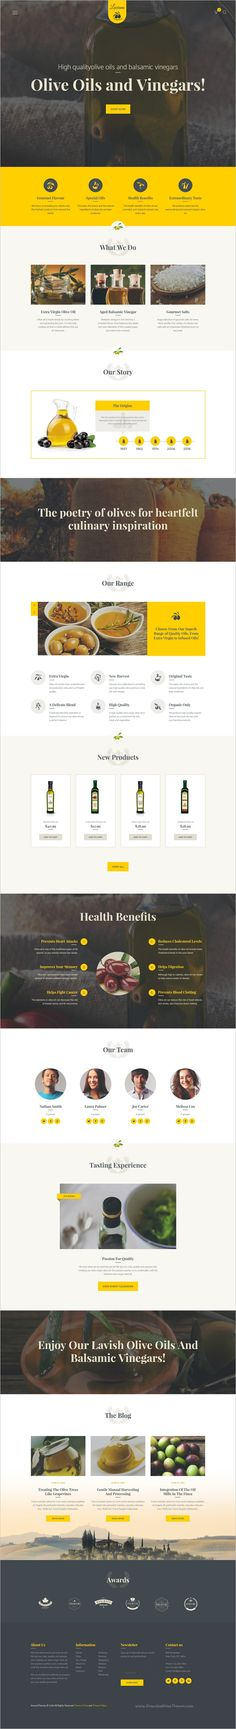 Luciana is a wonderful minimal design responsive #WordPress theme for #olive oil, vinegar #production company or #agriculture farms websites download now➩ https://themeforest.net/item/olive-oil-and-vinegars-production-wordpress-theme/17100820?ref=Datasata